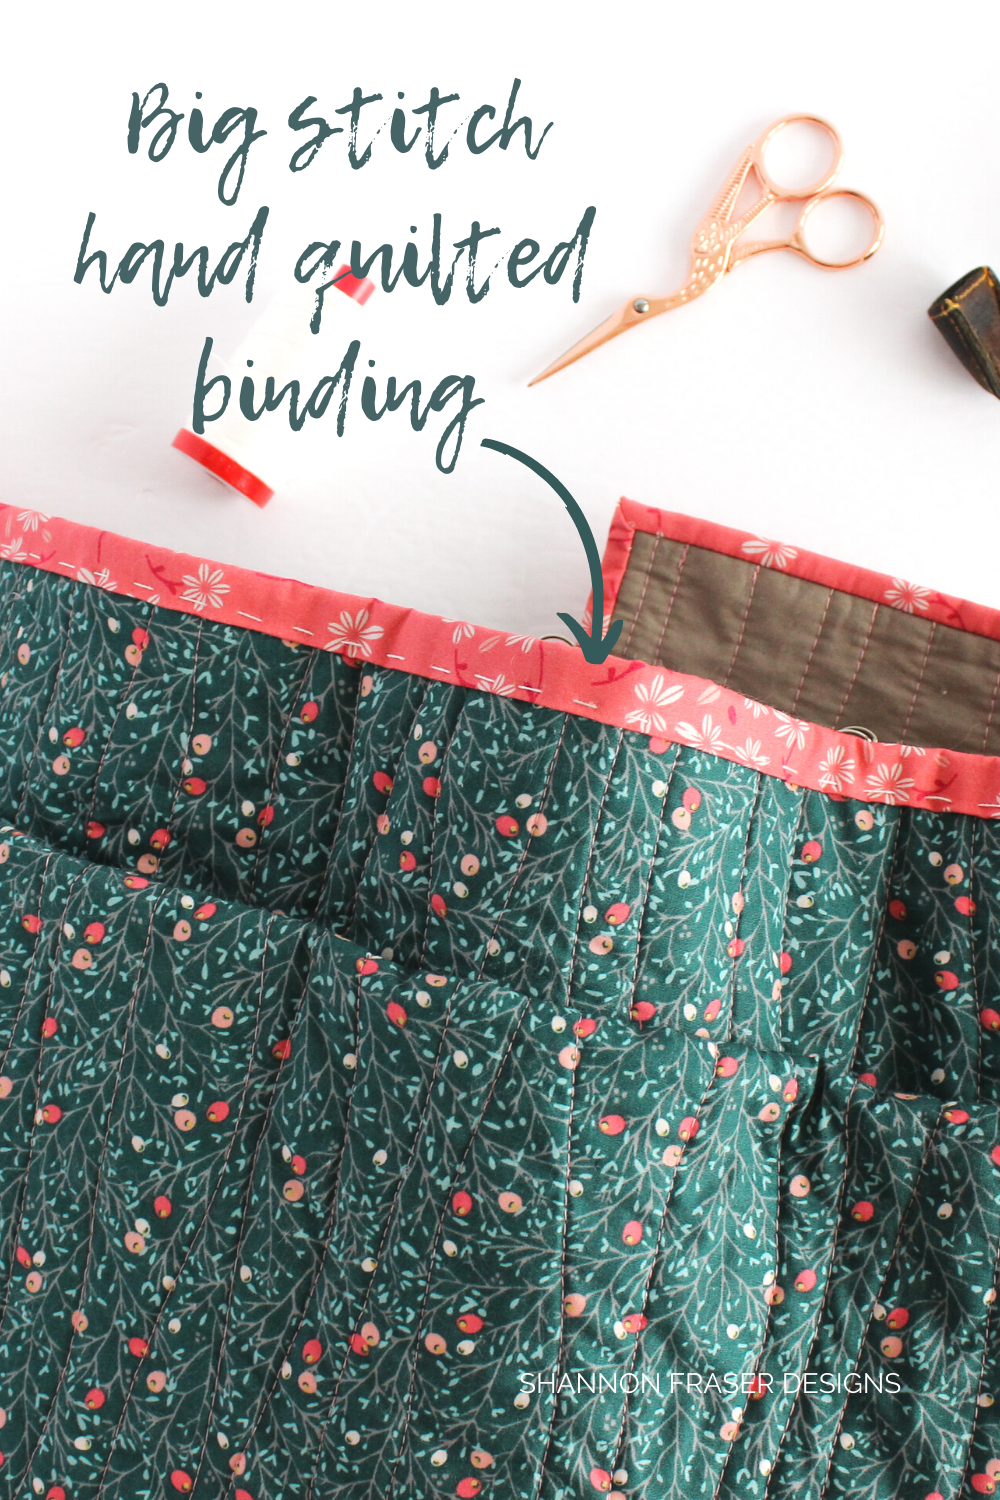 Big stitch hand quilted binding using 12wt Aurifil Thread on the holiday Shattered Star Quilt | Quilt Tutorial: How to bind your quilt | Shannon Fraser Designs #quiltbinding